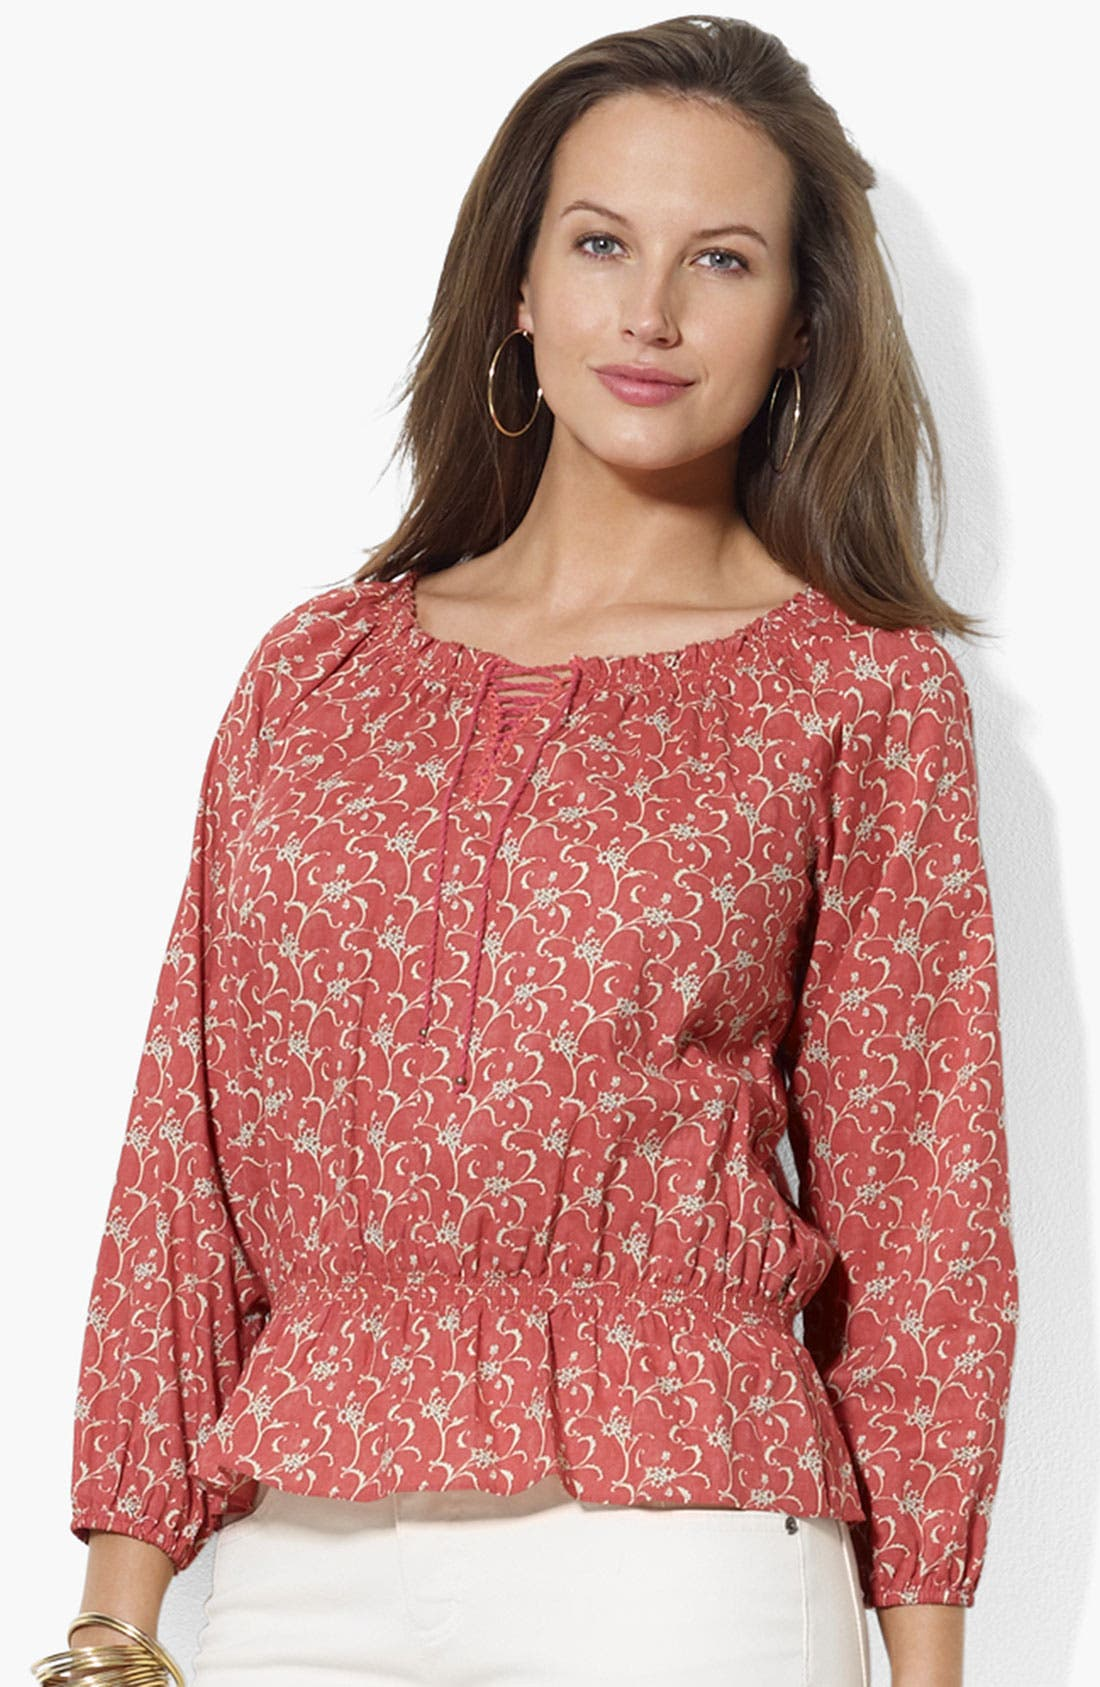 Main Image - Lauren Ralph Lauren Print Lace Up Peasant Top (Plus Size)